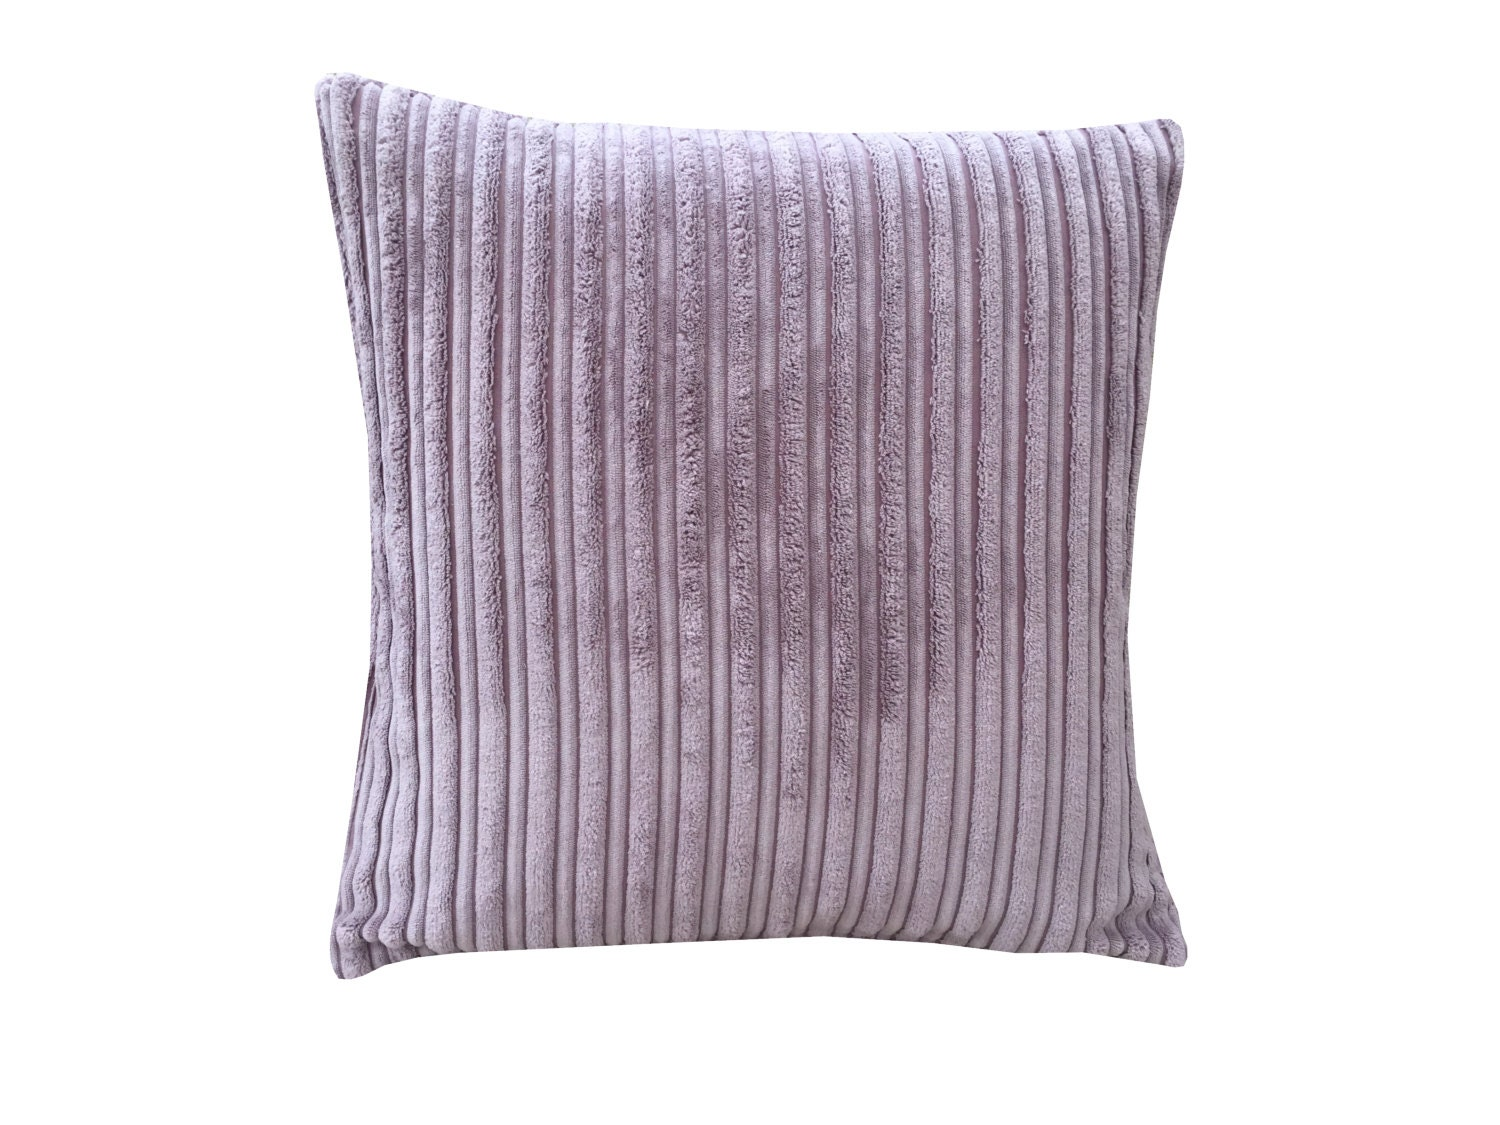 Cushion cover pillow case Lilac Plum Mauve ribbed design John Lewis Designer Fabric soft fleece feel ideal for all homes one size 16